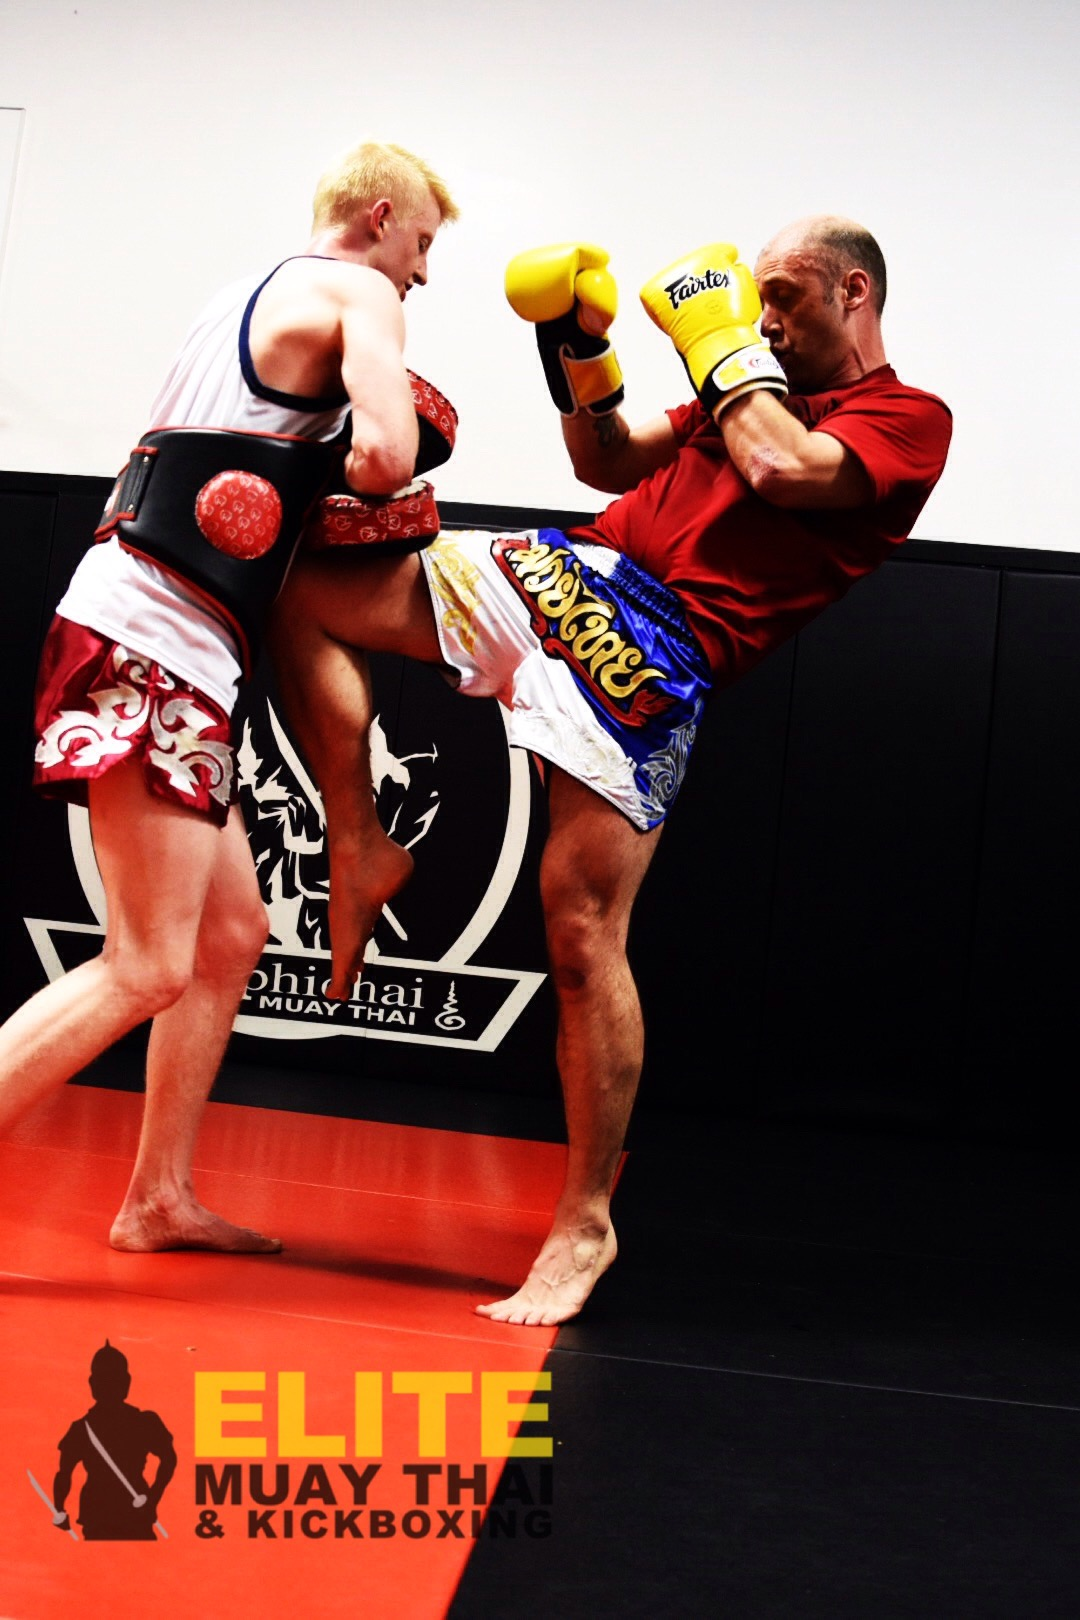 muay thai fighters in calgary